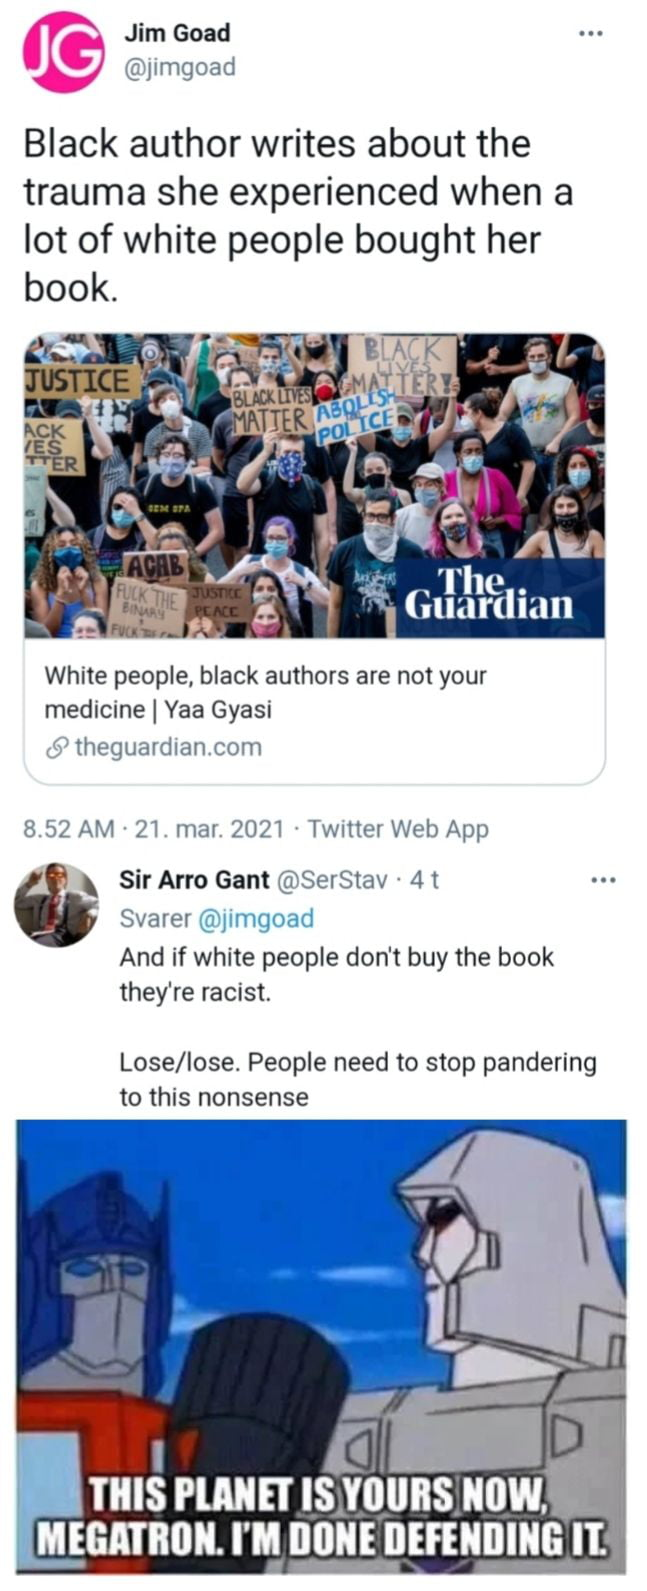 It seems like whatever you do as a white person these days it's racists and it has come to a point where it's annoying. Your thoughts? Do you feel shame for being white in today's society?